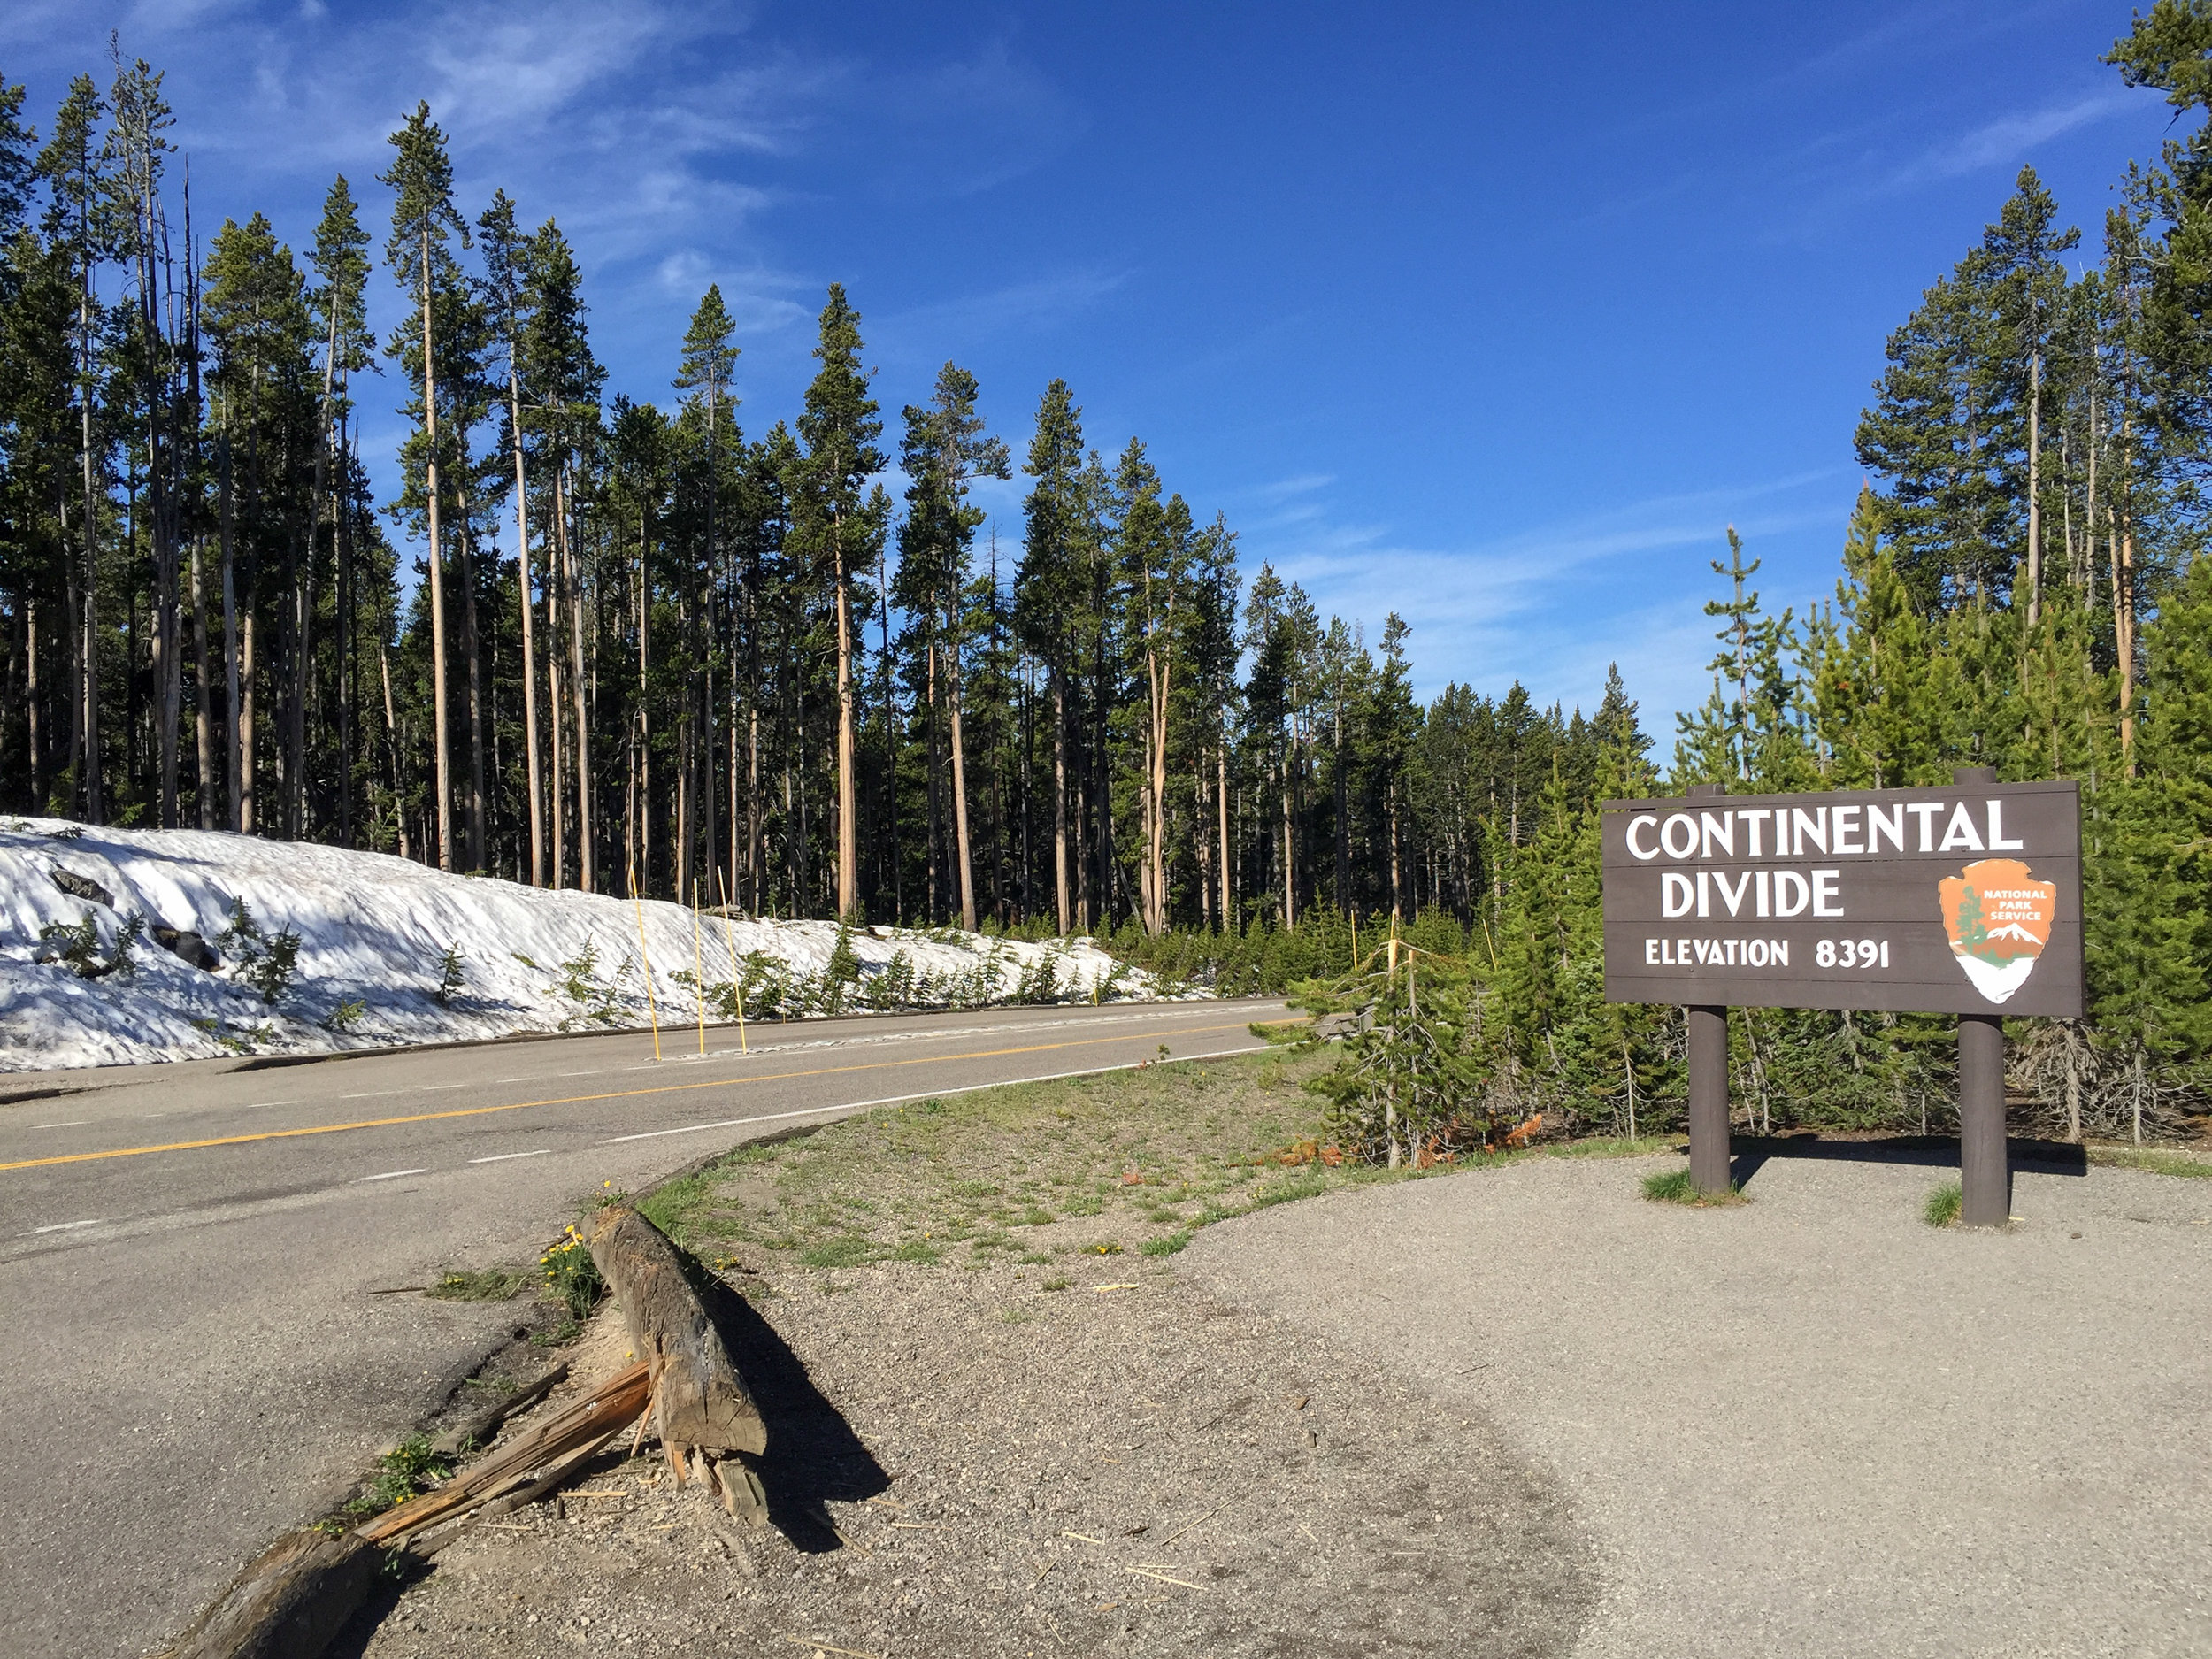 Continental Divide, Yellowstone National Park, Image # 9810